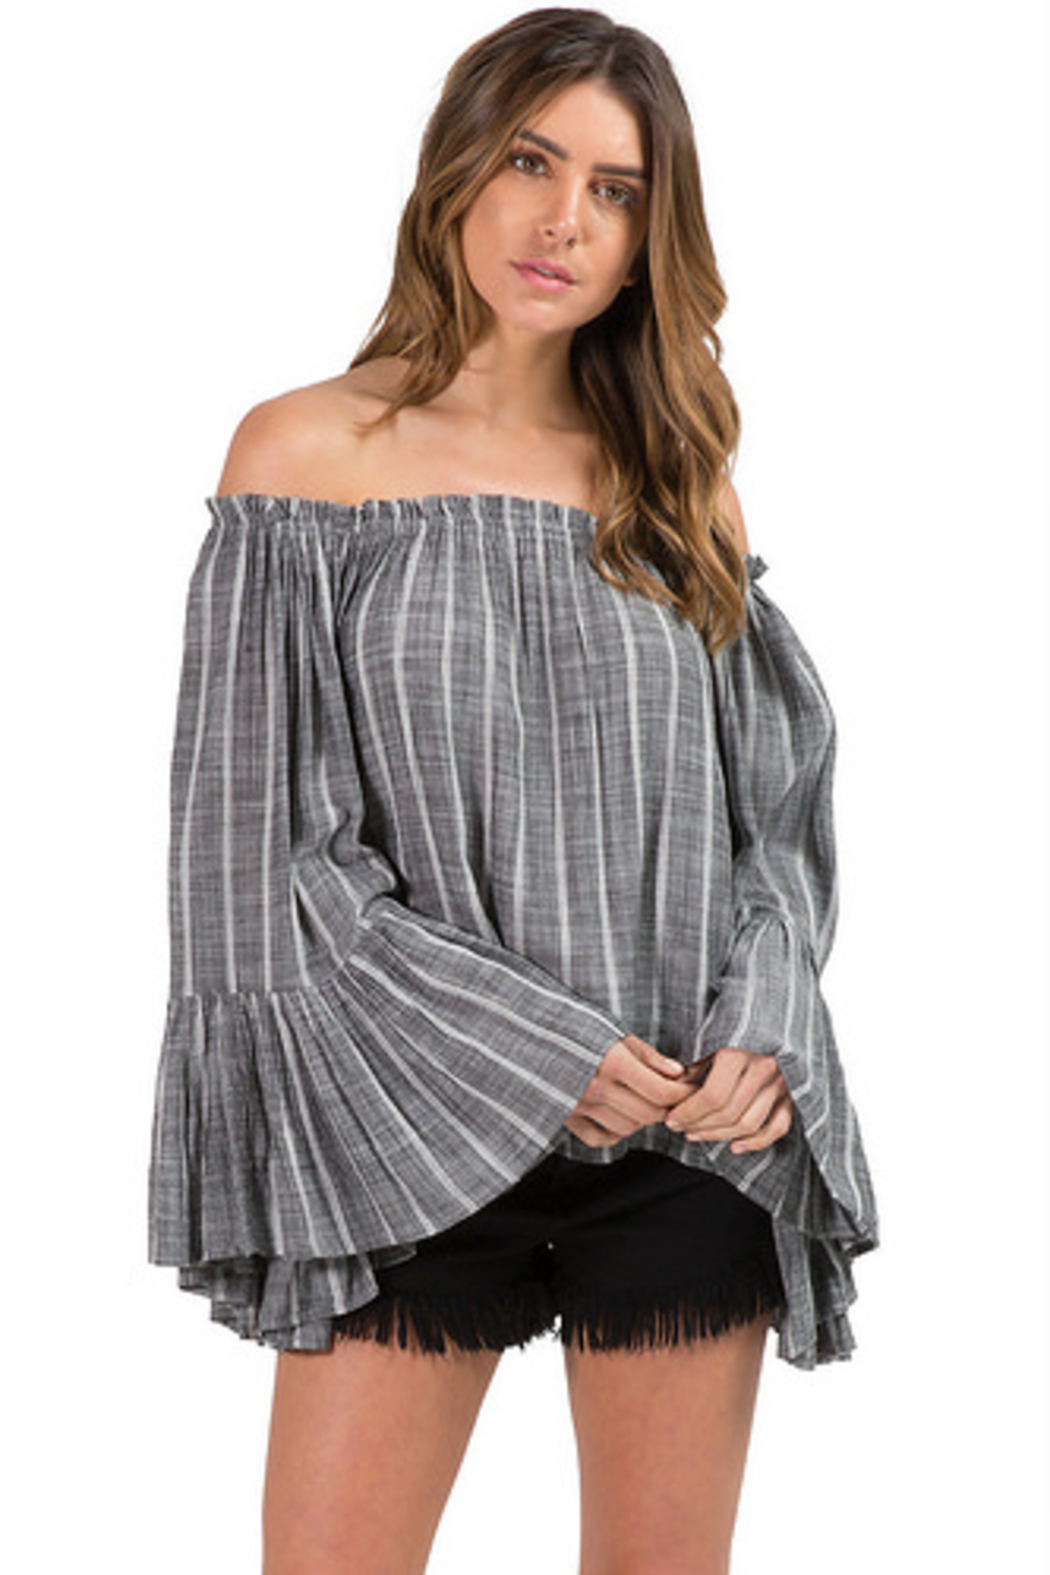 ae77d584845a Elan Off The Shoulder Top from New York City by FOR INTERNAL USE ...